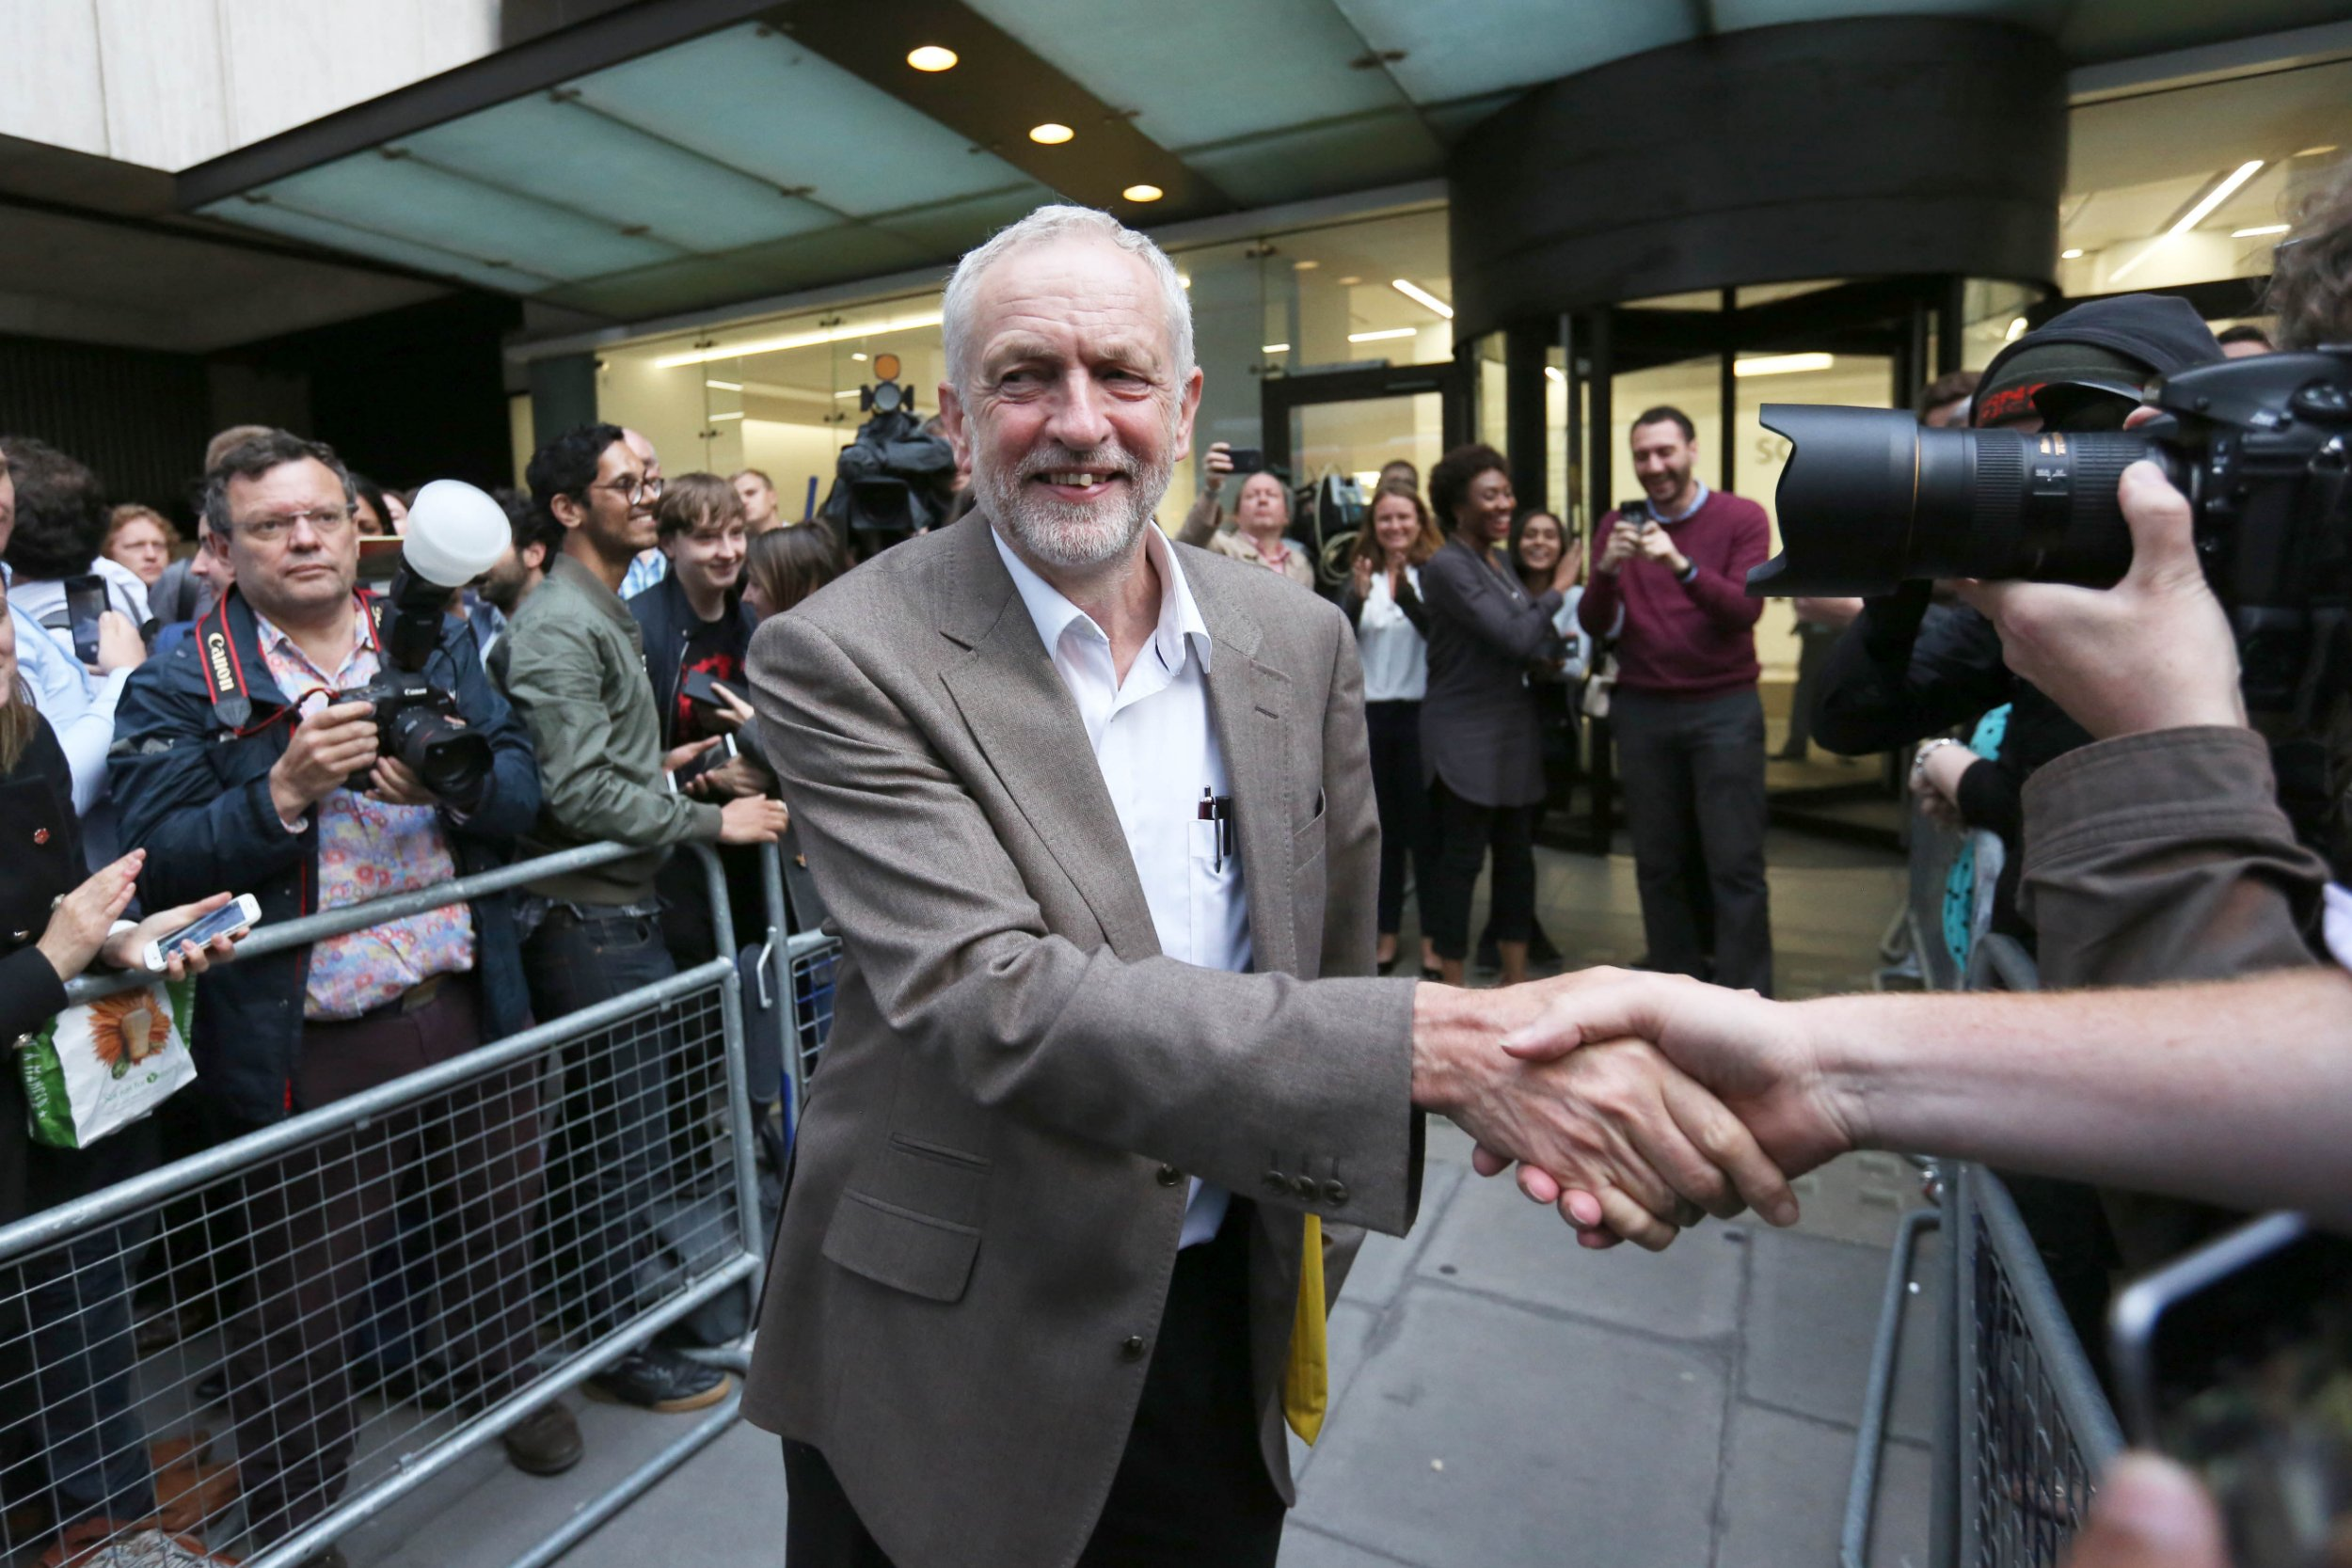 """Labour Party leader Jeremy Corbyn leaves Labour HQ in Westminster, London, where the Labour NEC held meeting about the party leadership contest, as Corbyn has said that Labour MPs will understand they have to come together after it was agreed to automatically include him on the ballot in the party's leadership contest. PRESS ASSOCIATION Photo. Picture date: Tuesday July 12, 2016. The Opposition leader said he was """"delighted"""" that the secret vote of the ruling National Executive Committee went in his favour after hours of discussions at the party's headquarters in central London. See PA story POLITICS Labour. Photo credit should read: Rick Findler/PA Wire"""